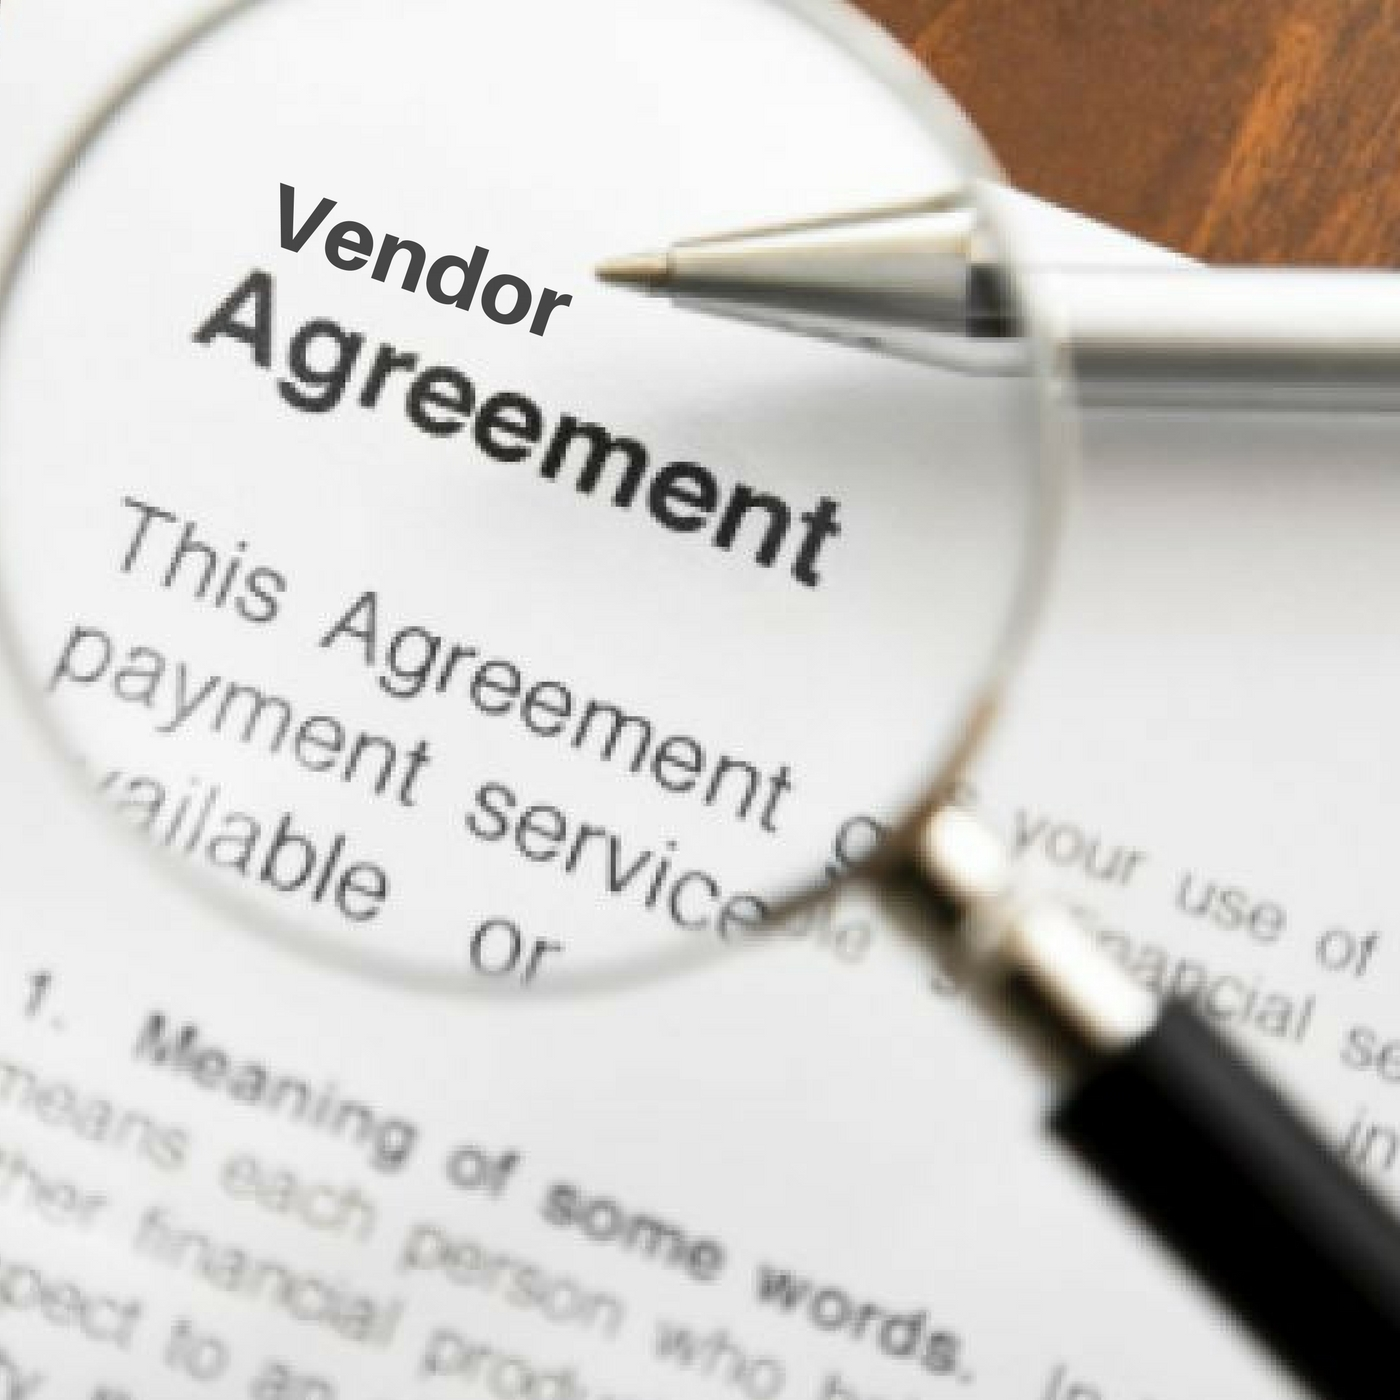 Vendor Agreement Format For E Commerce In India Aapka Consultant